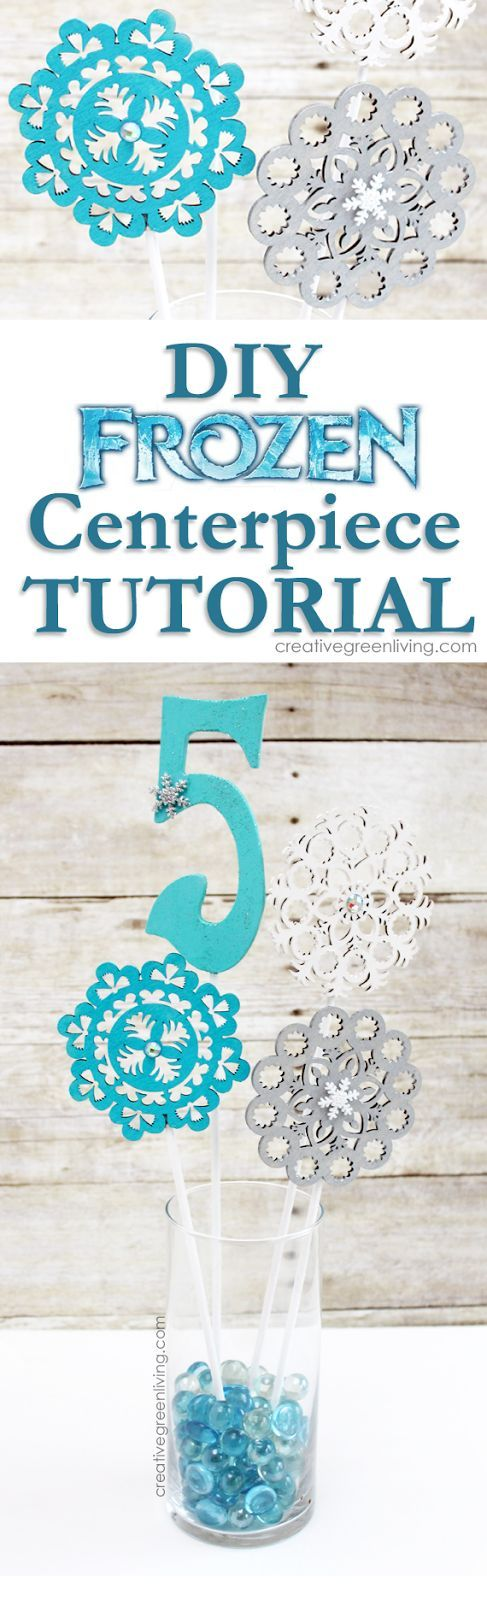 Easy To Make Frozen Party Centerpieces Works For Winter Or Snowflake Themes Too Also Rh